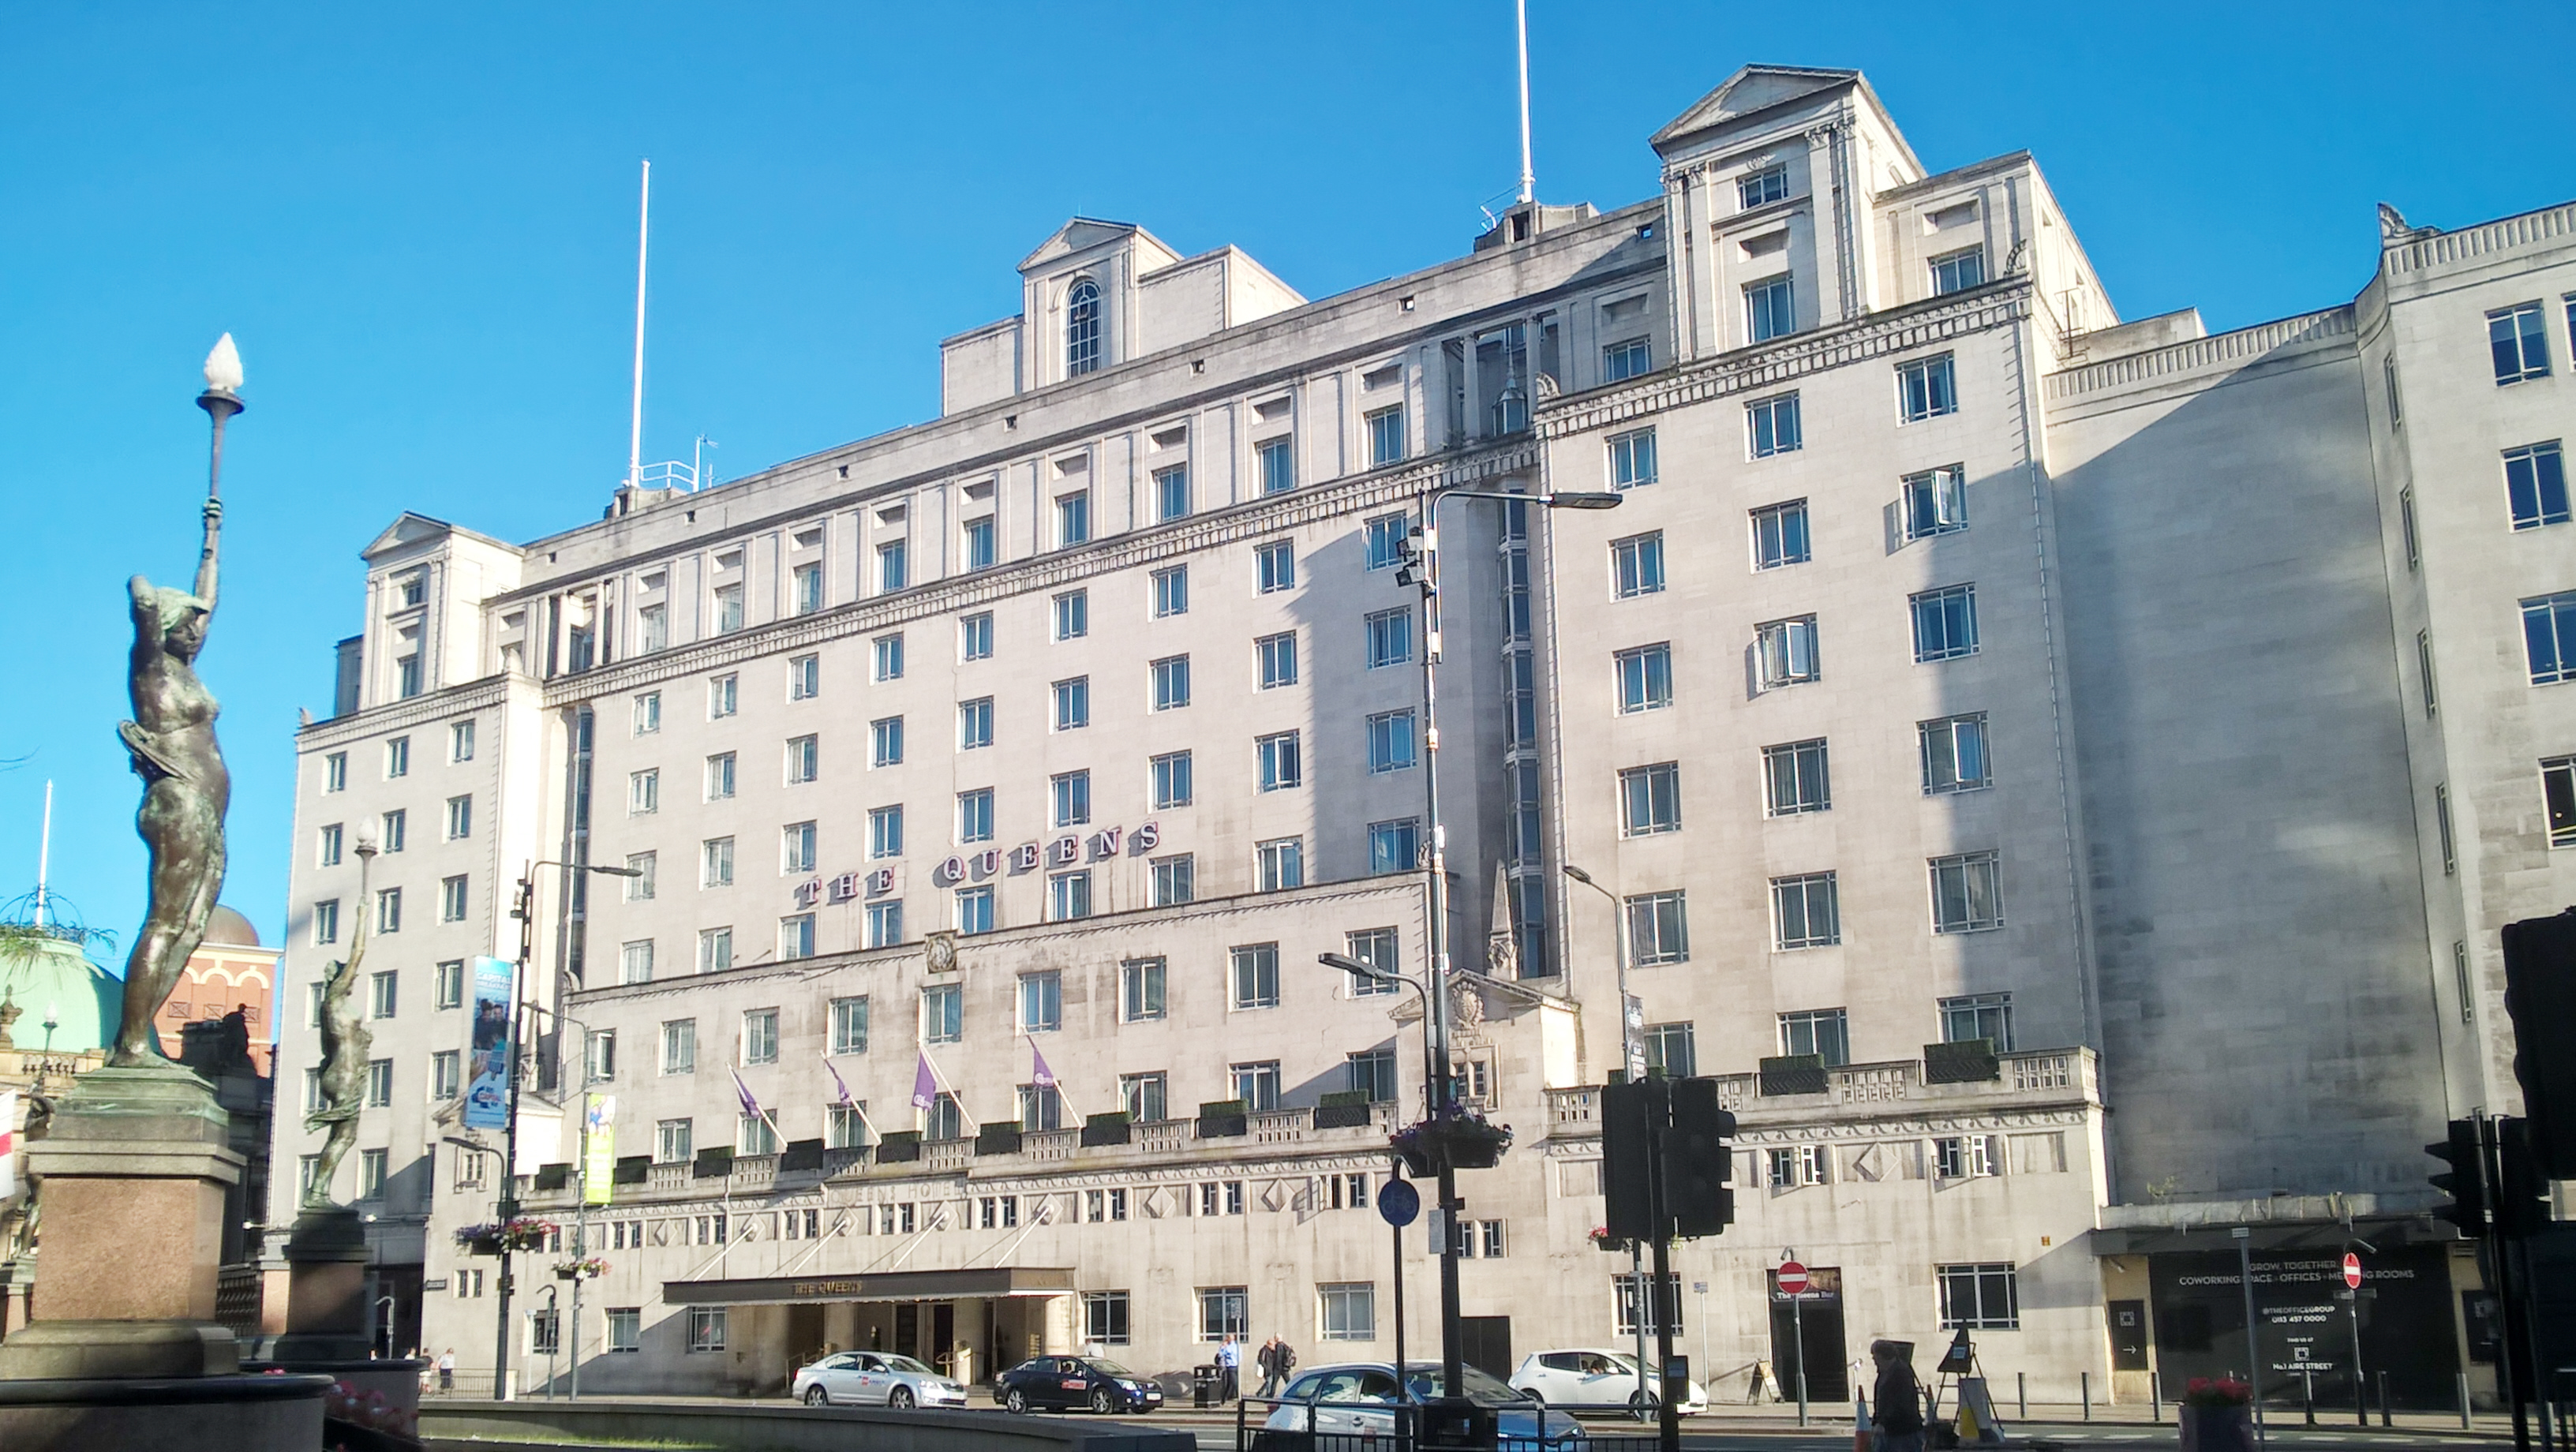 The Queens Hotel in Leeds, the venue for the 2019 ARA Conference